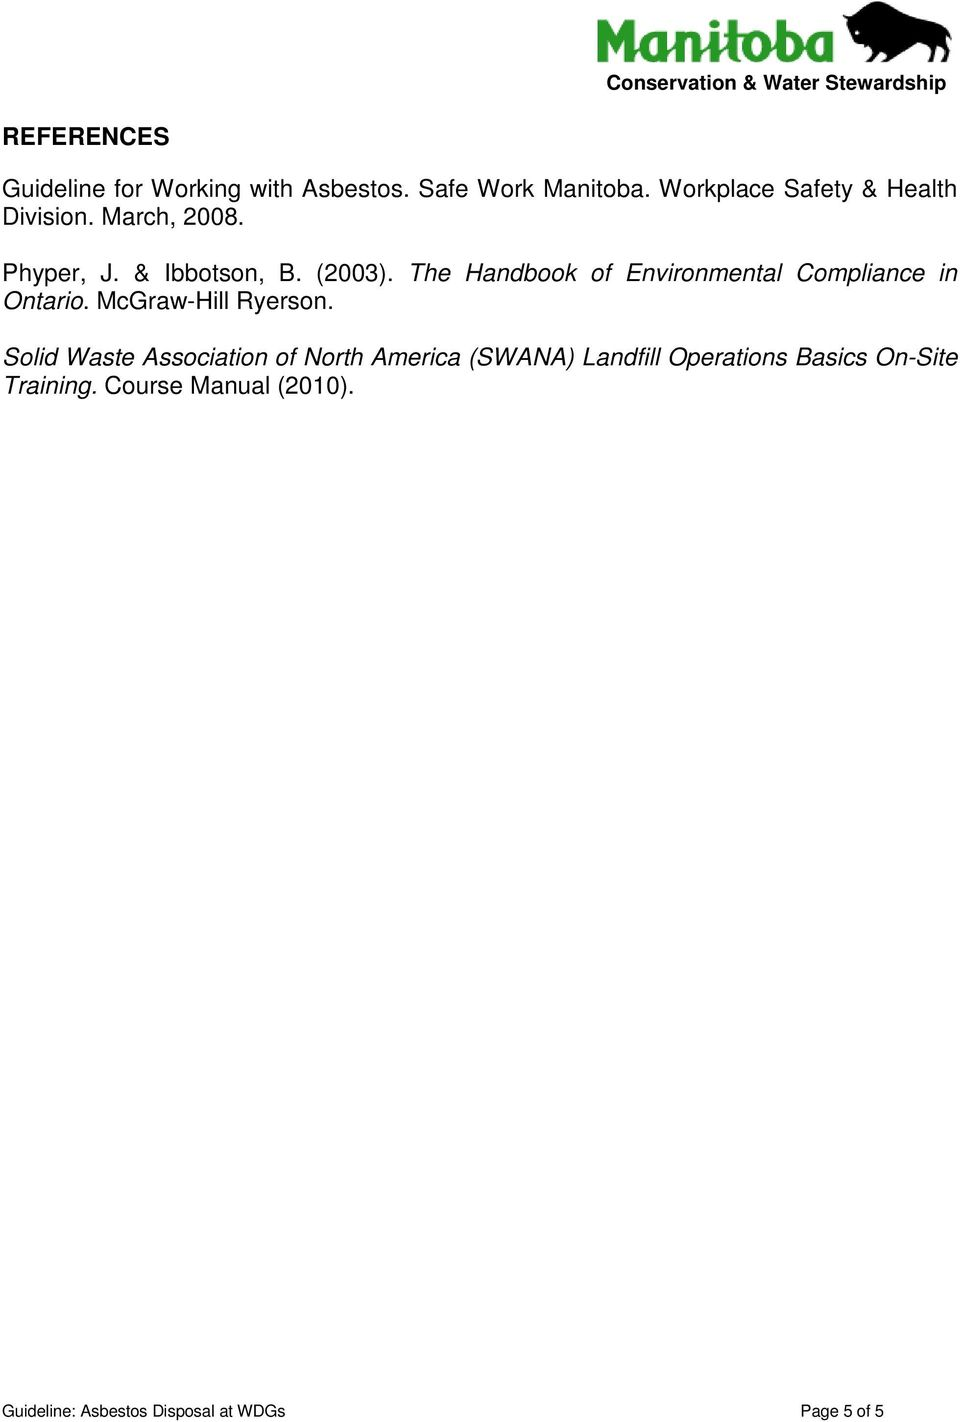 The Handbook of Environmental Compliance in Ontario. McGraw-Hill Ryerson.